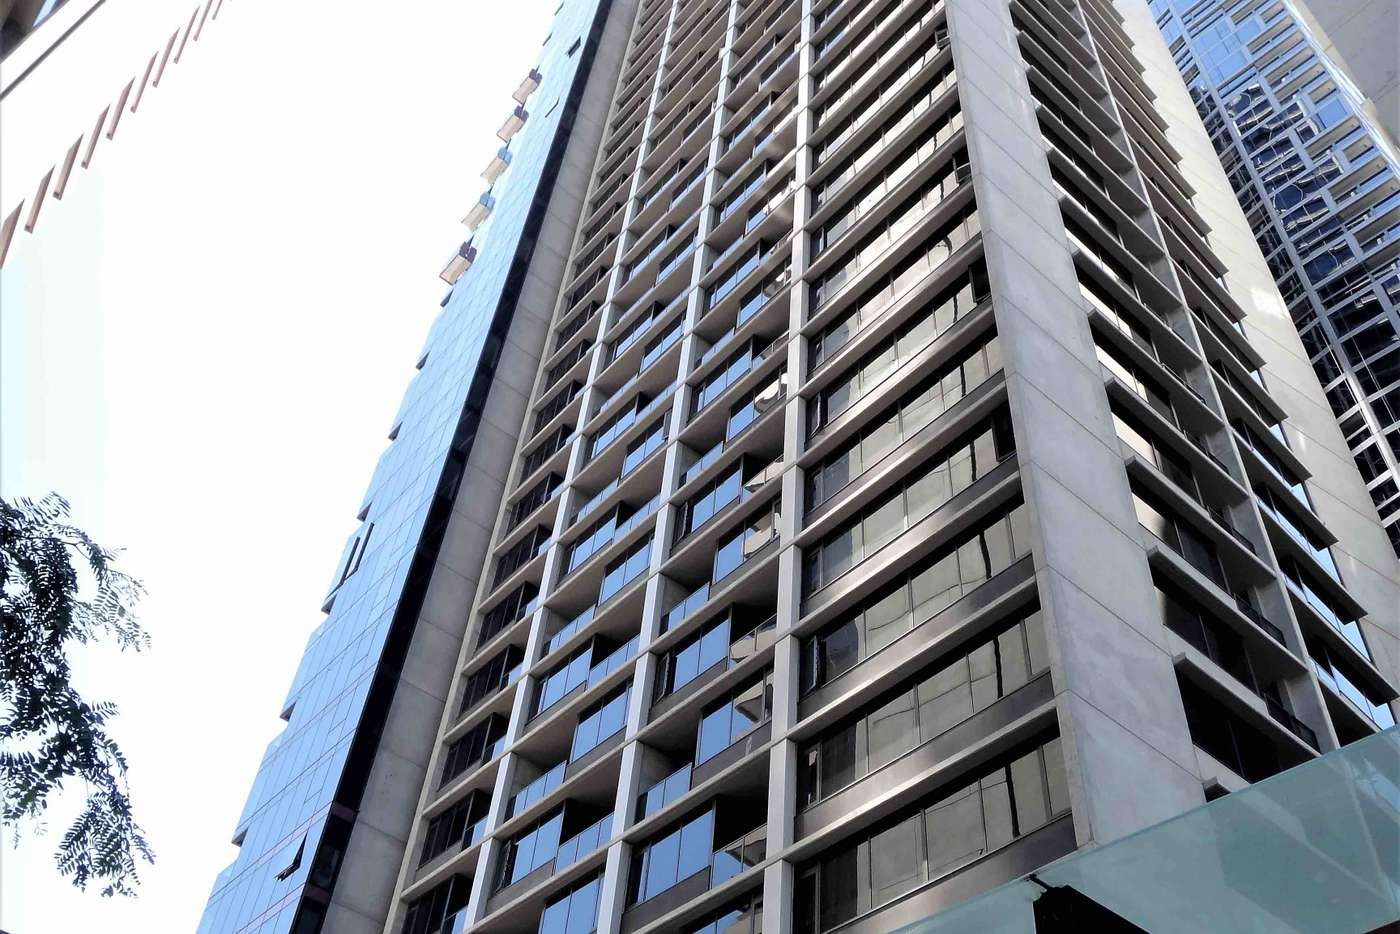 Main view of Homely apartment listing, 3606/33 Rose Lane, Melbourne VIC 3000